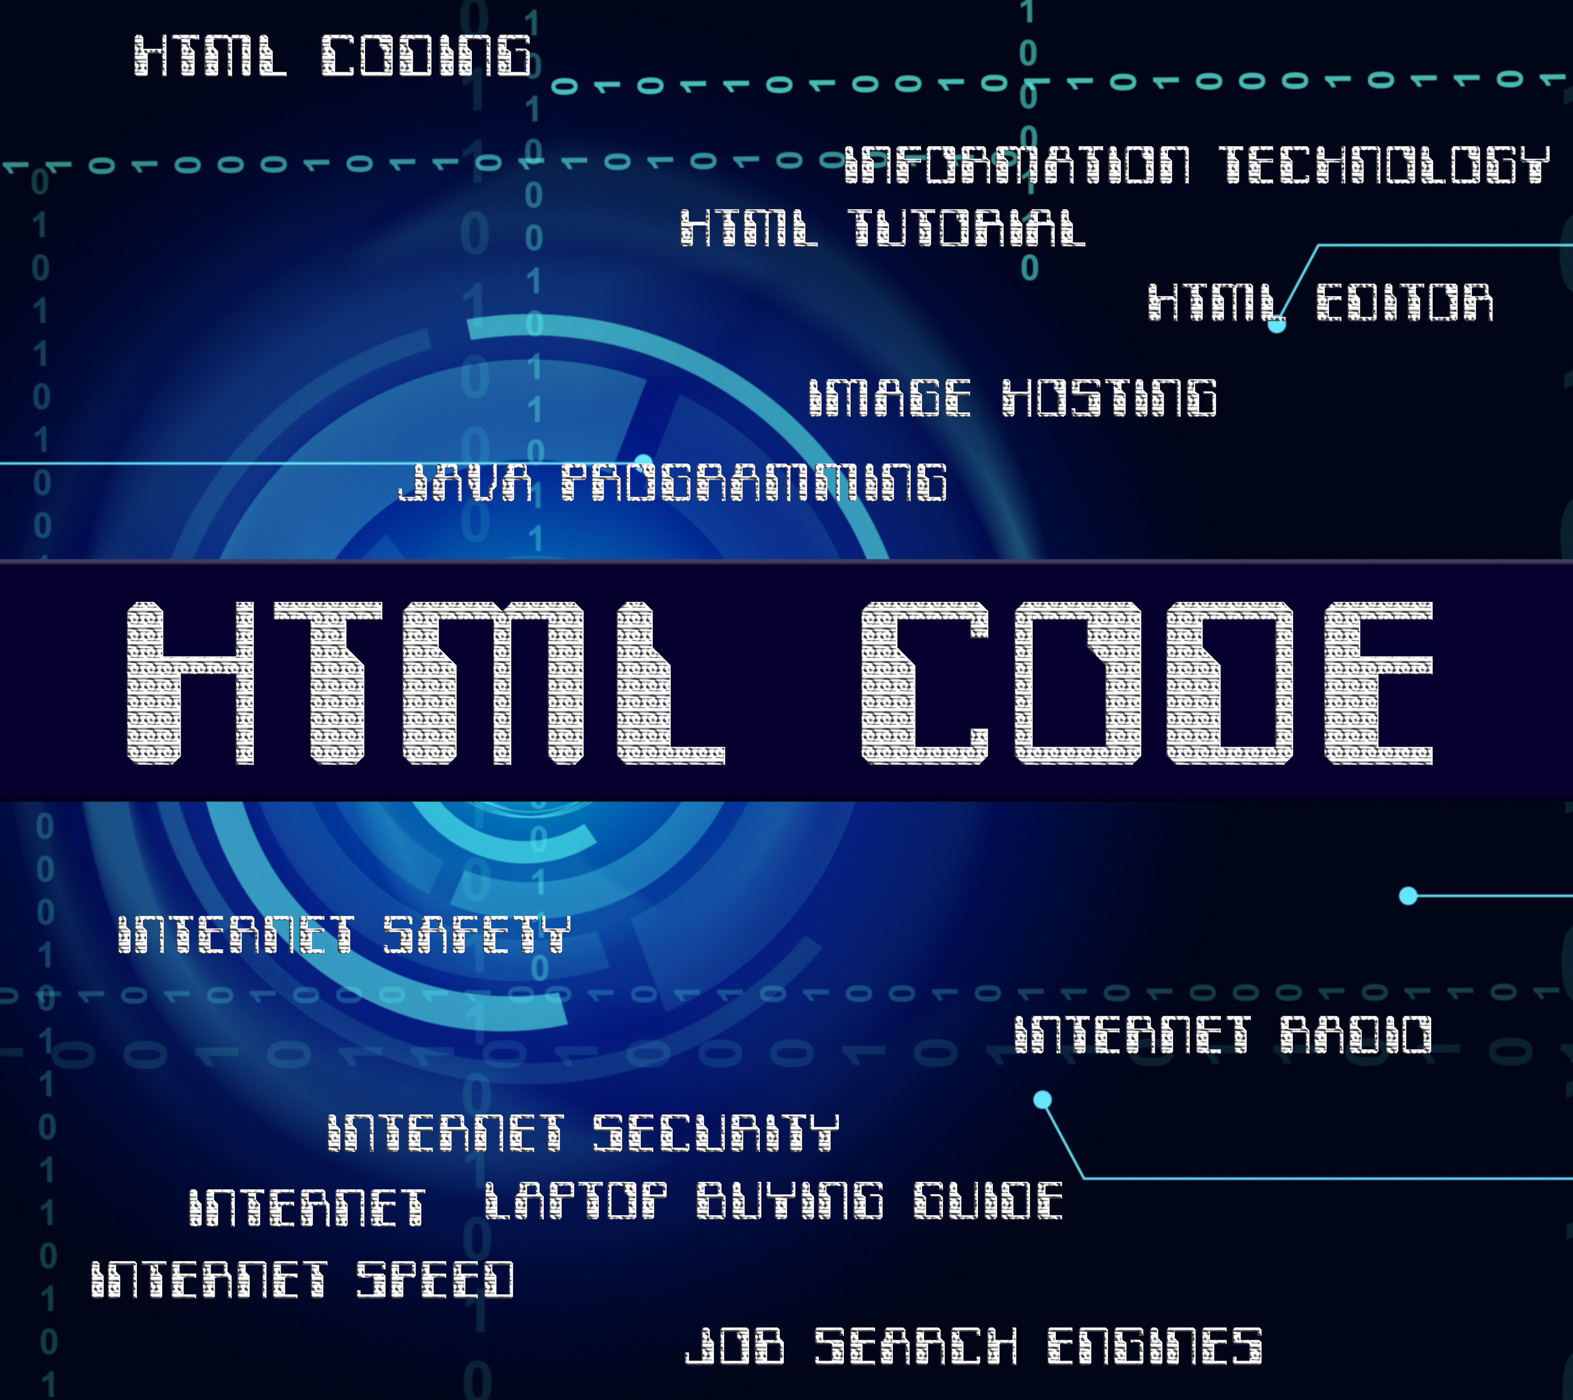 Html code shows hypertext markup language and cipher photo